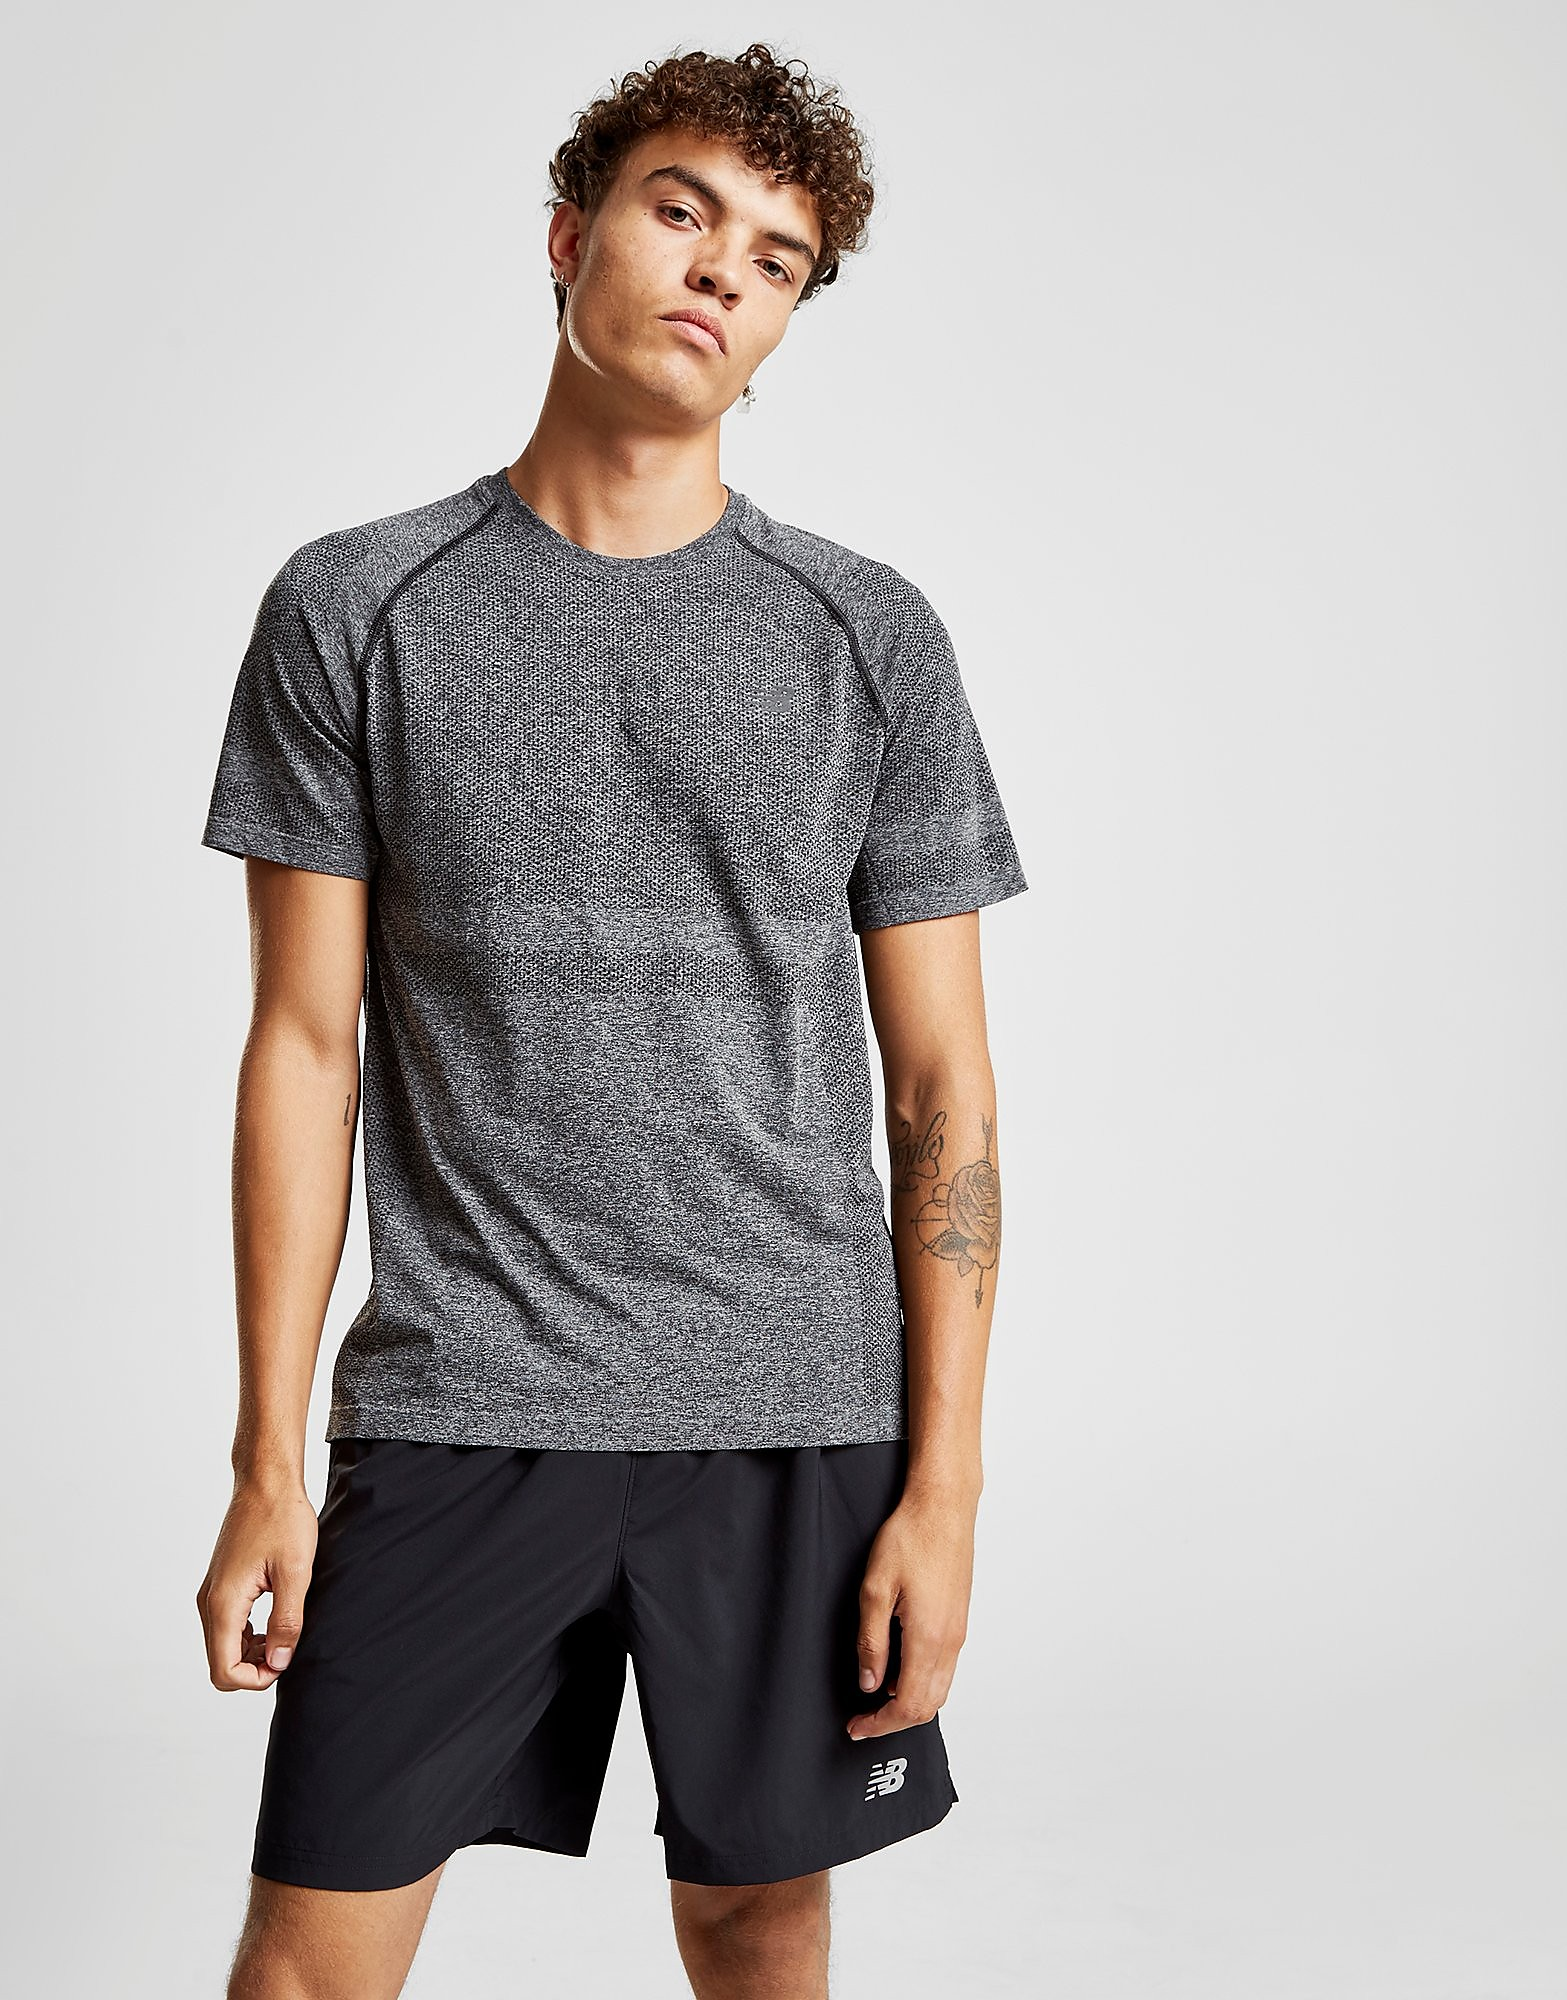 New Balance Seamless T-Shirt Heren - Grijs - Heren